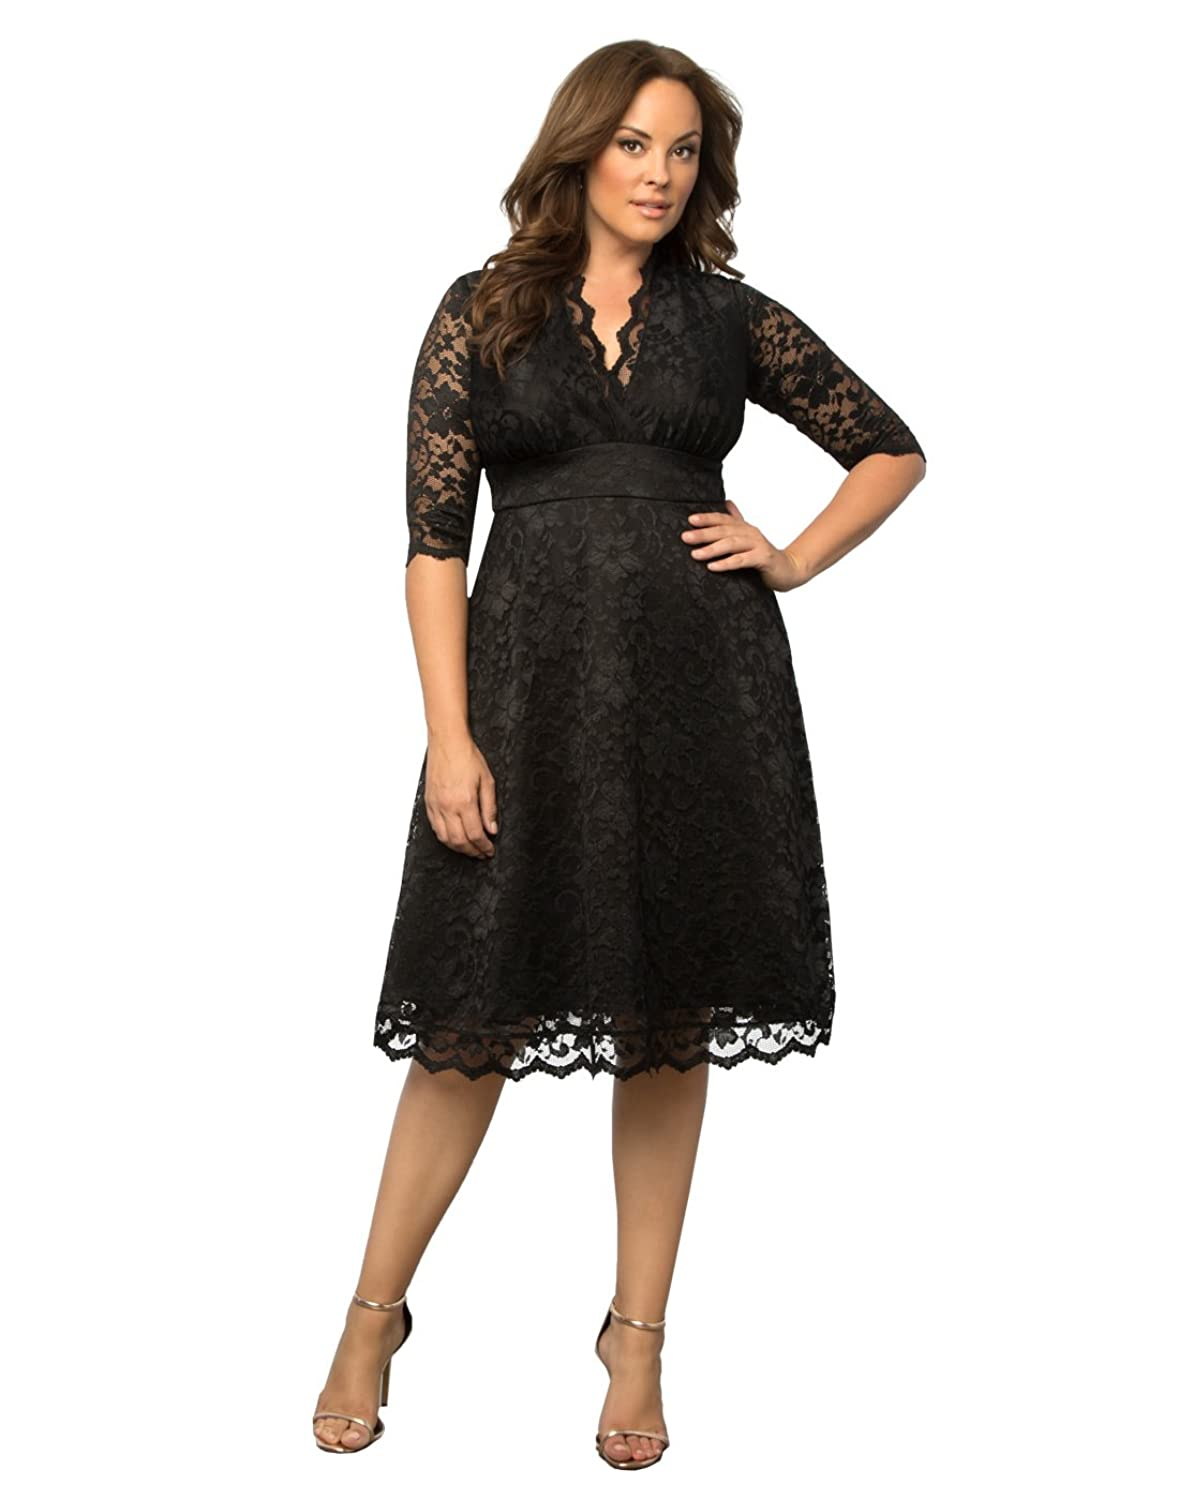 Plus Size Vintage Dresses, Plus Size Retro Dresses Kiyonna Womens Plus Size Mademoiselle Lace Dress $164.00 AT vintagedancer.com